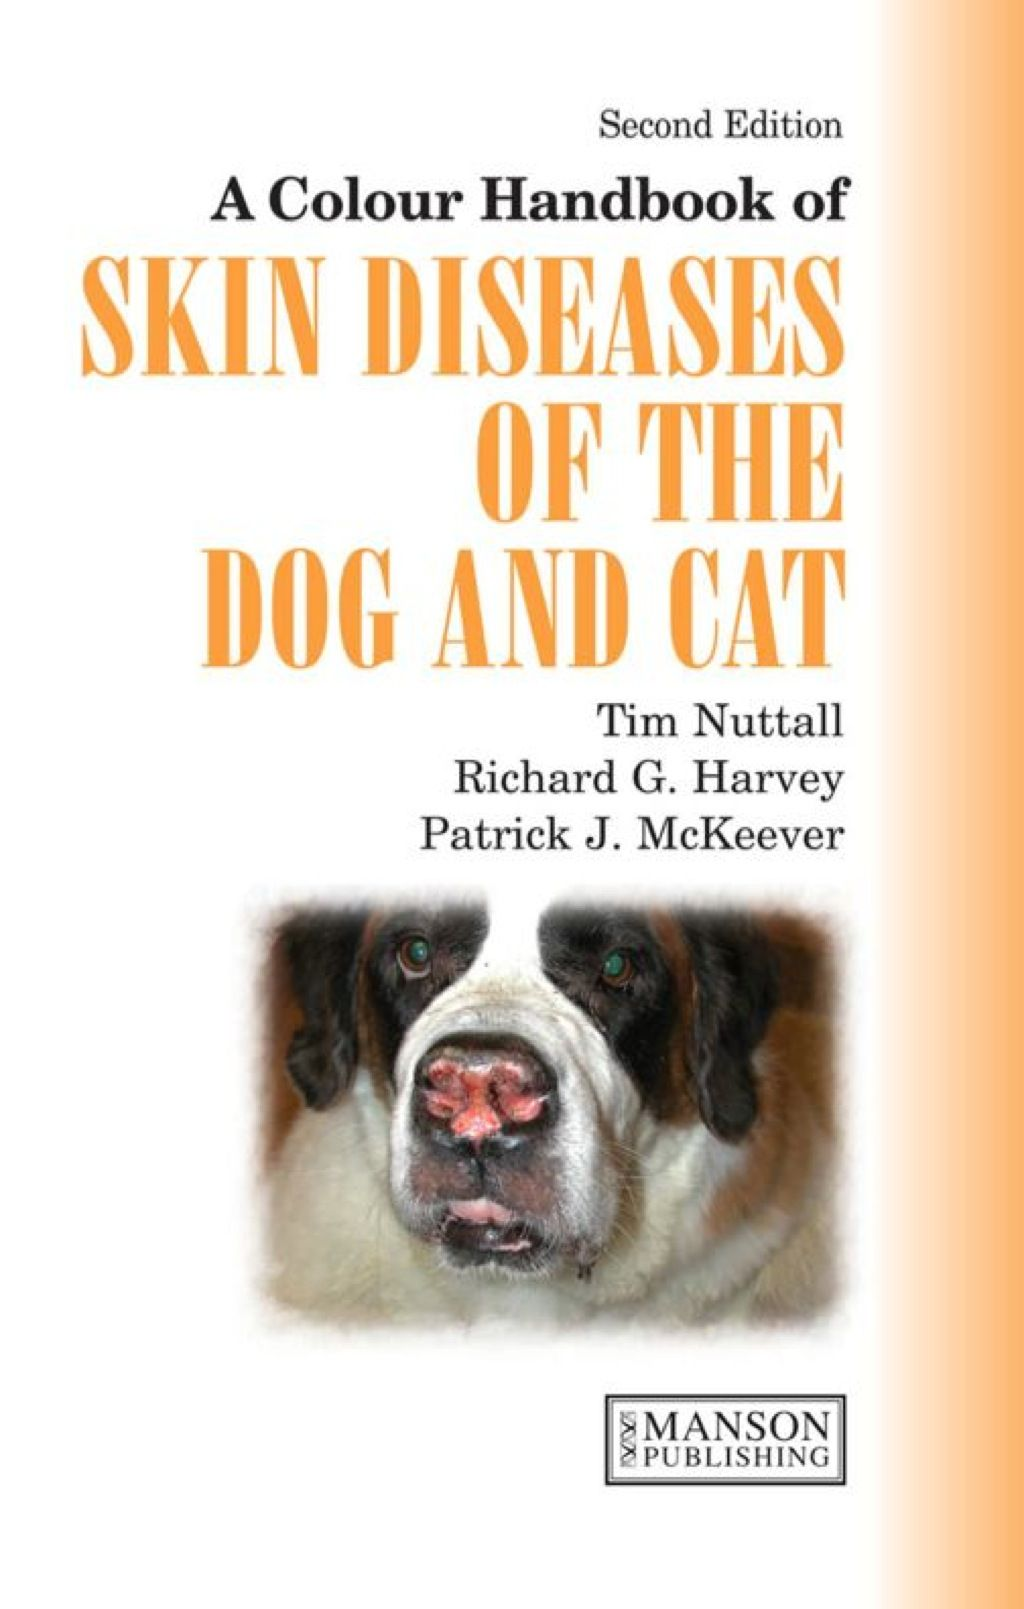 A Colour Handbook of Skin Diseases of the Dog and Cat UK